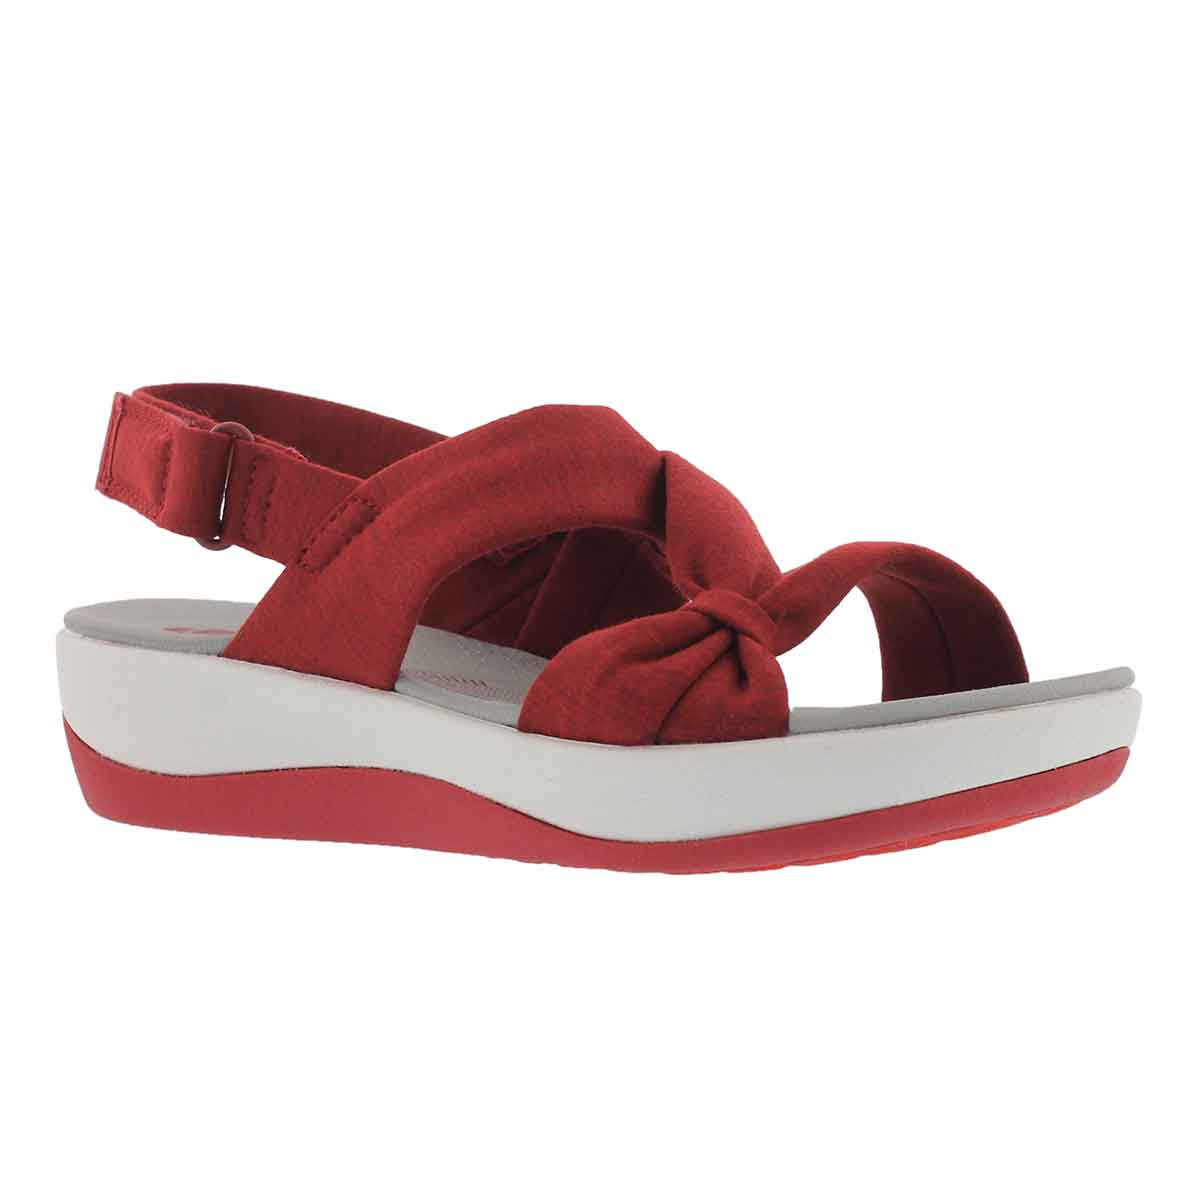 Women's ARLA PRIMROSE red wedge sandals